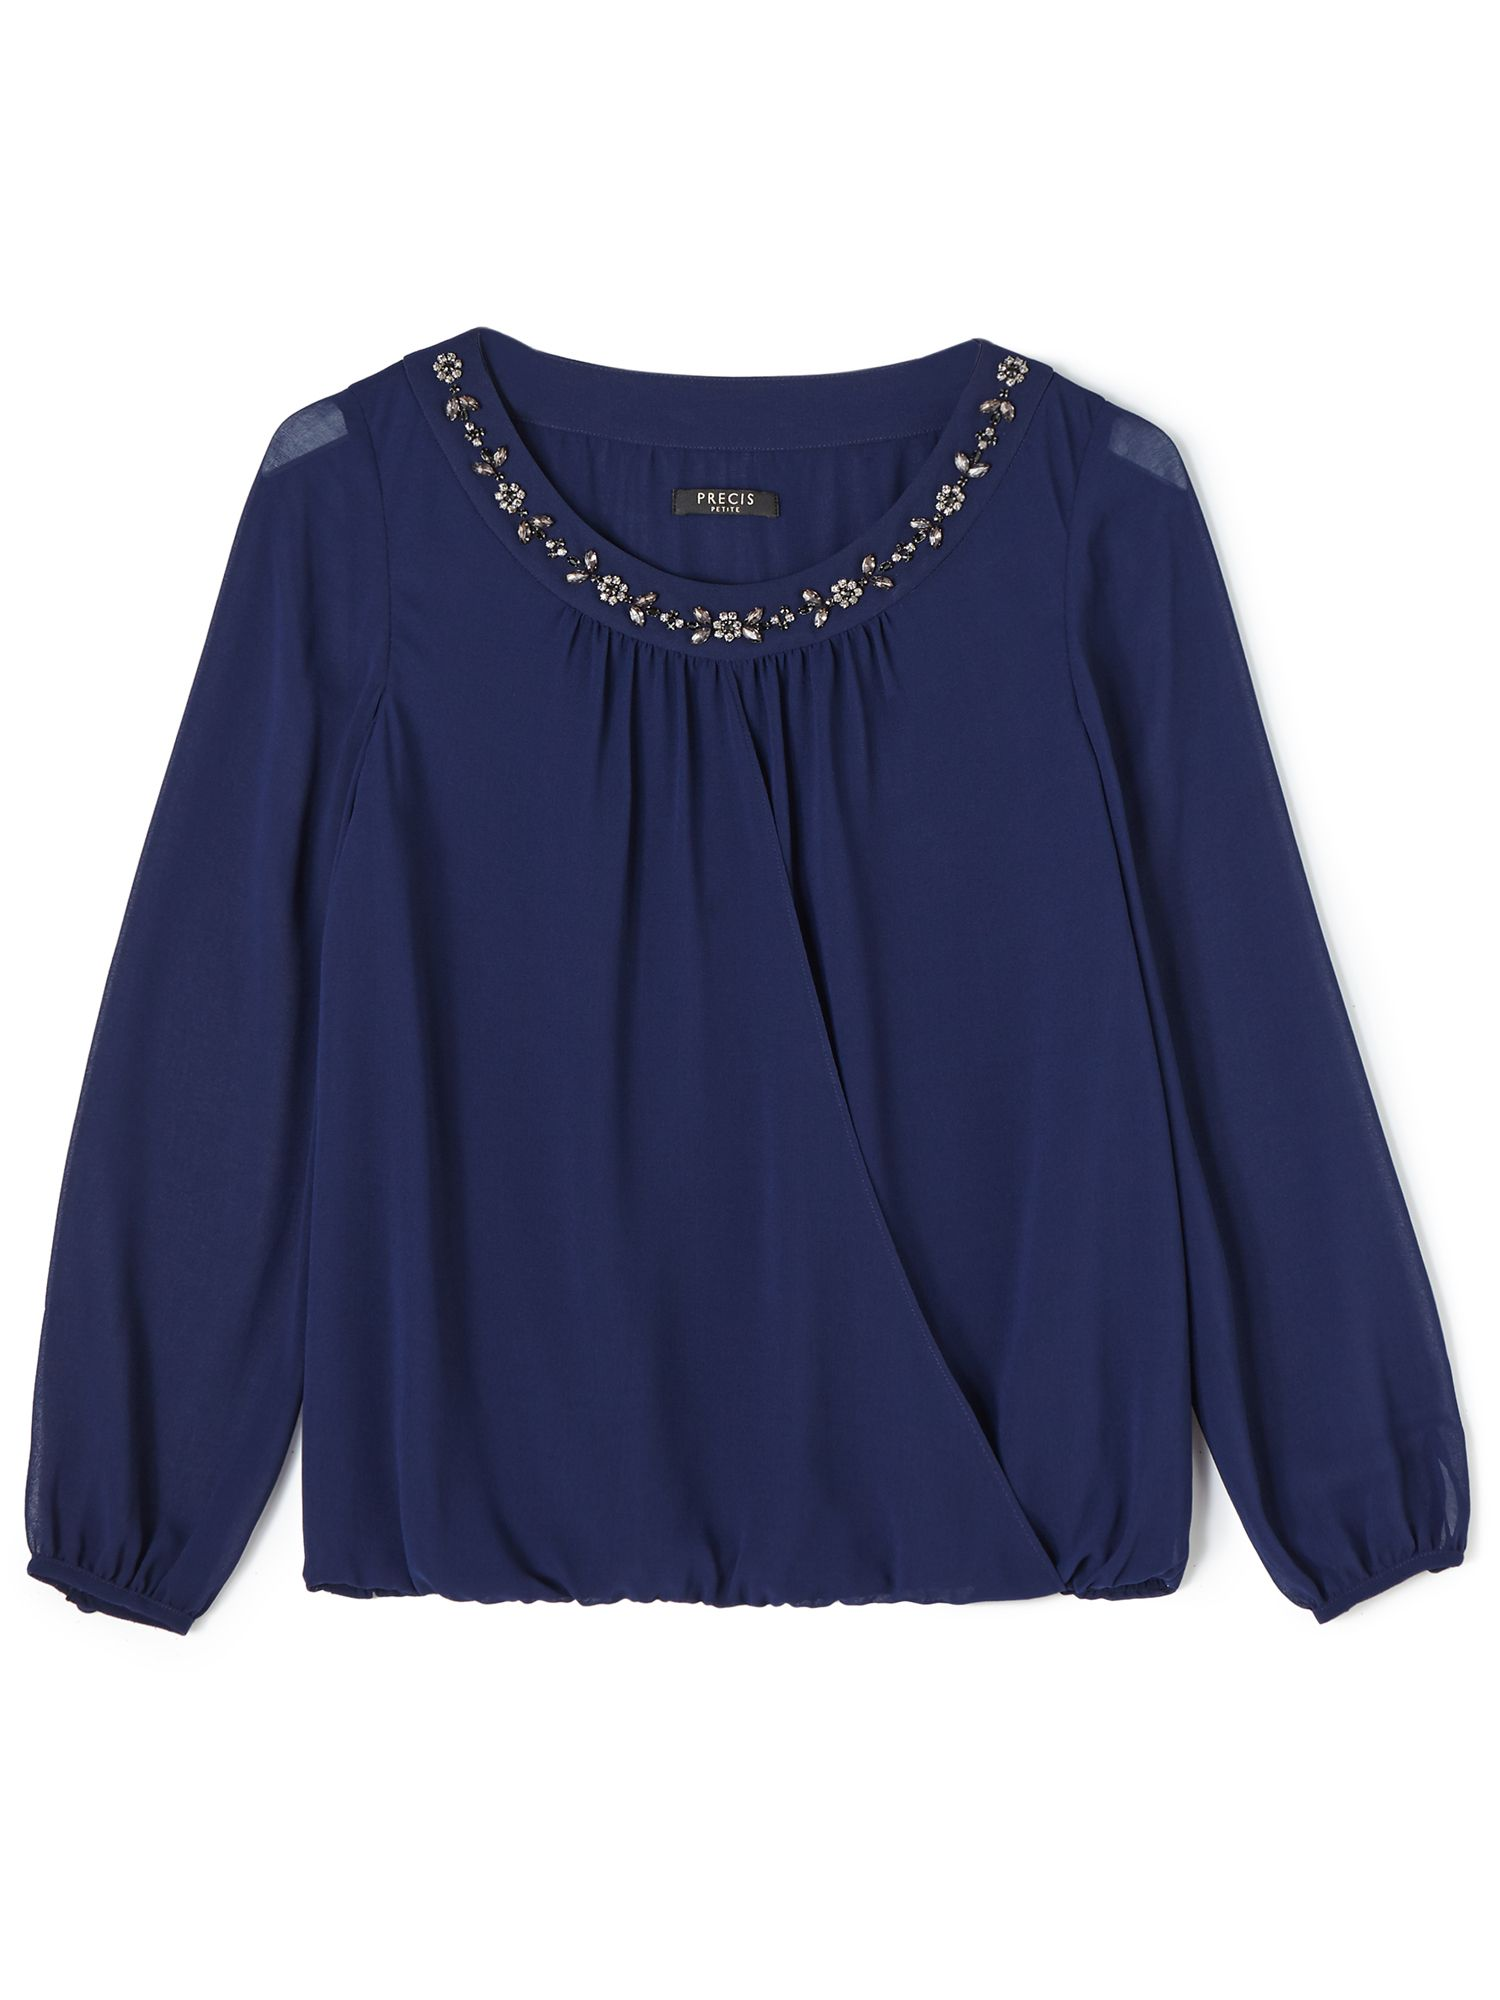 1920s Style Blouses Precis Petite Stacey Beaded Neck Blouse Navy £44.85 AT vintagedancer.com